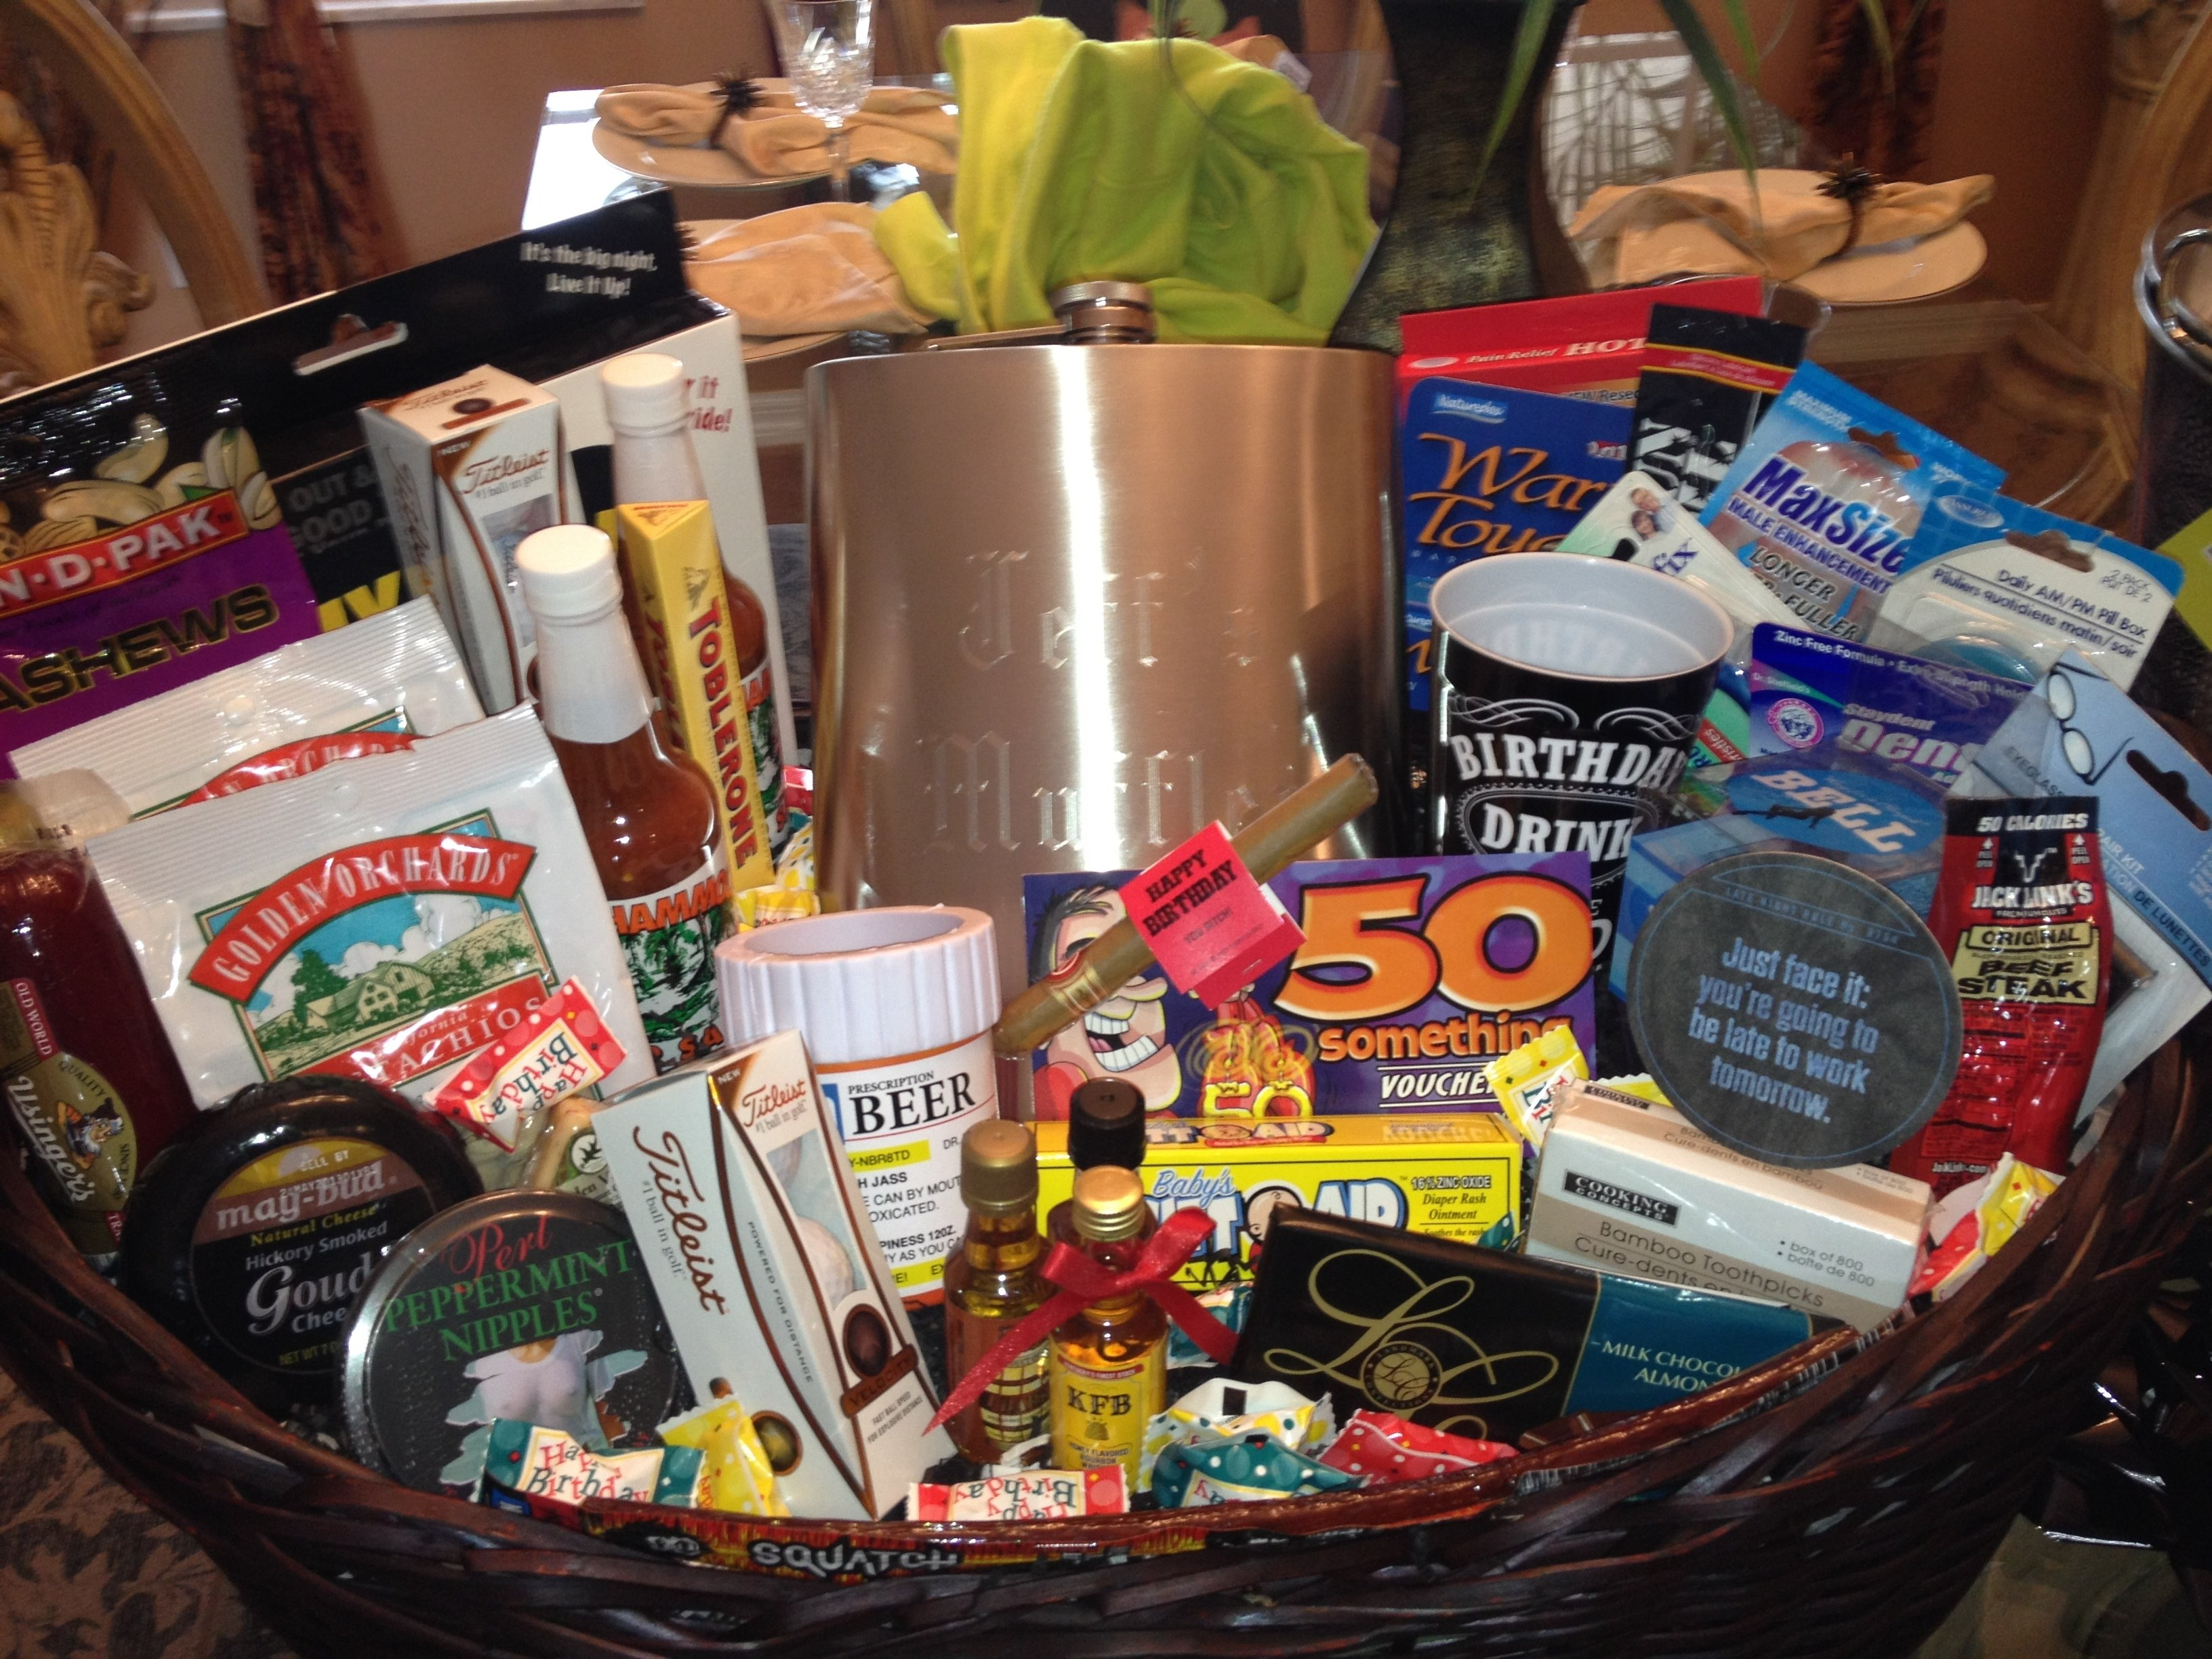 10 Attractive Gift Ideas For 50Th Birthday Woman 50th Basket Him